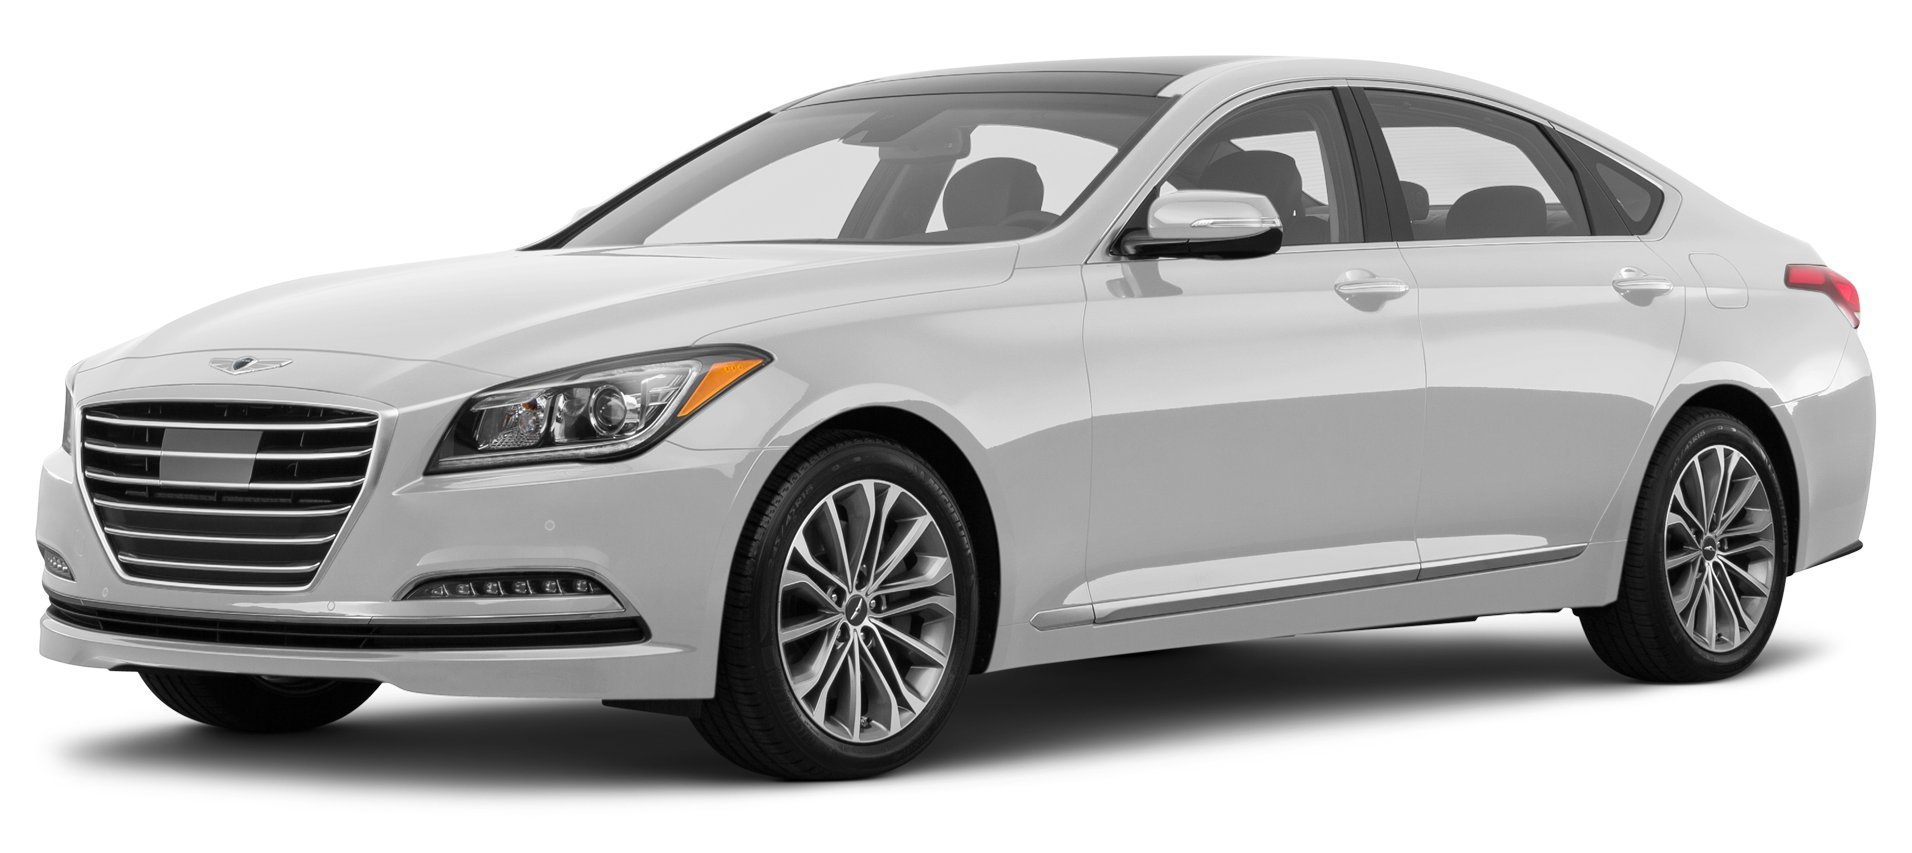 2017 genesis g80 reviews images and specs vehicles. Black Bedroom Furniture Sets. Home Design Ideas